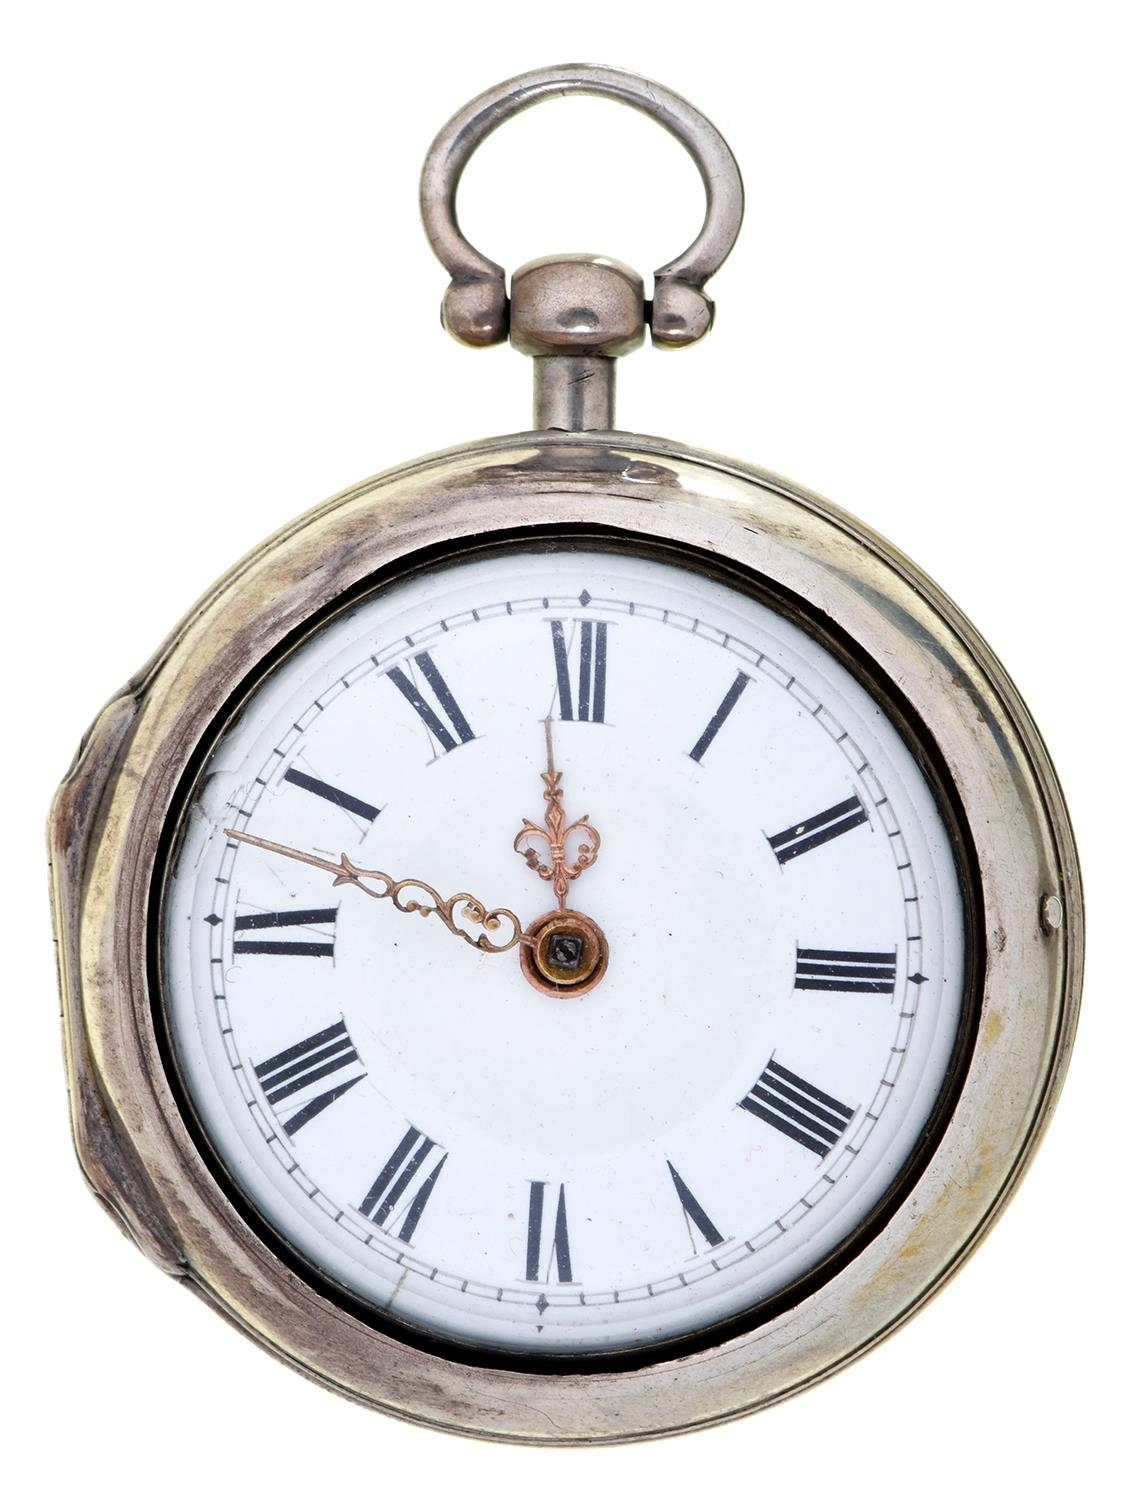 An English silver pair cased verge watch, Frans Pinney London, No 8355, with enamelled dial and